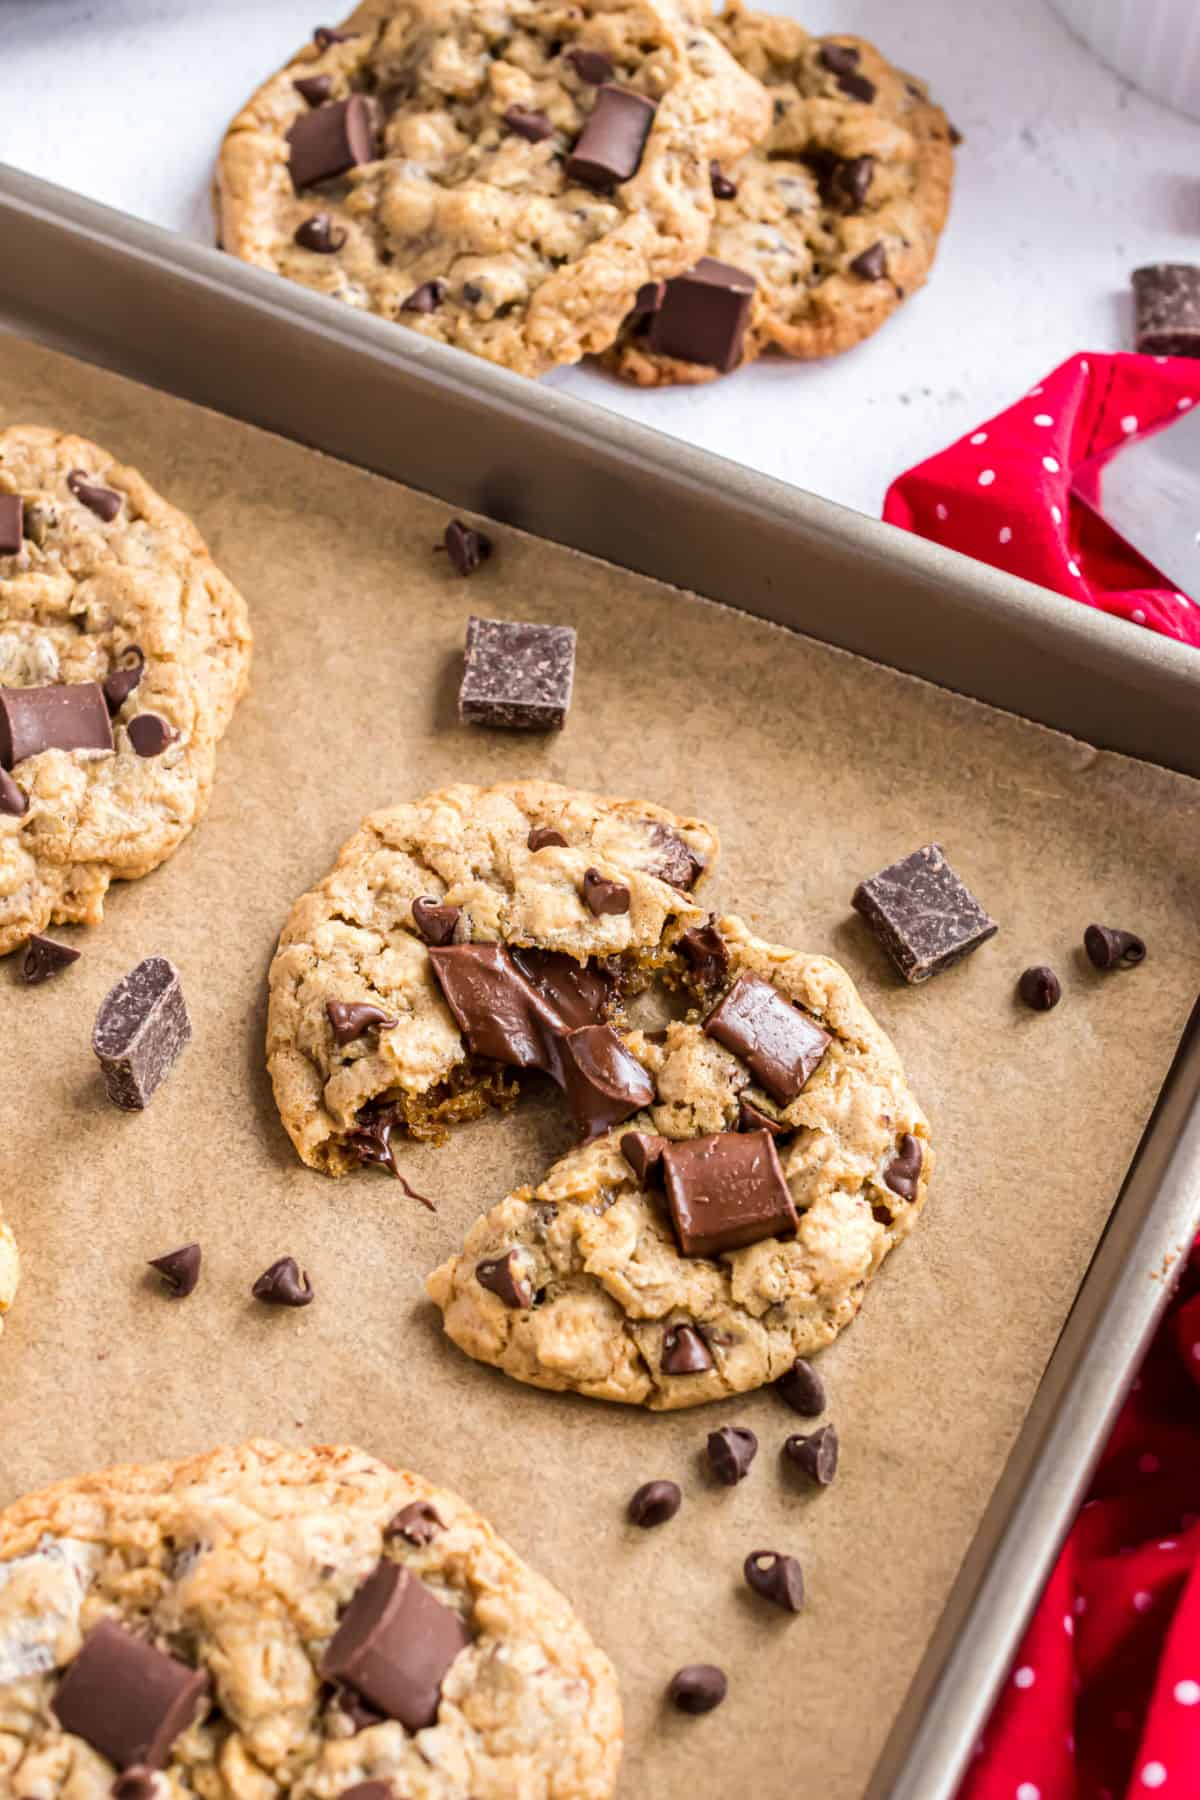 Oatmeal chocolate chunk cookie on a parchment paper lined cookie sheet.